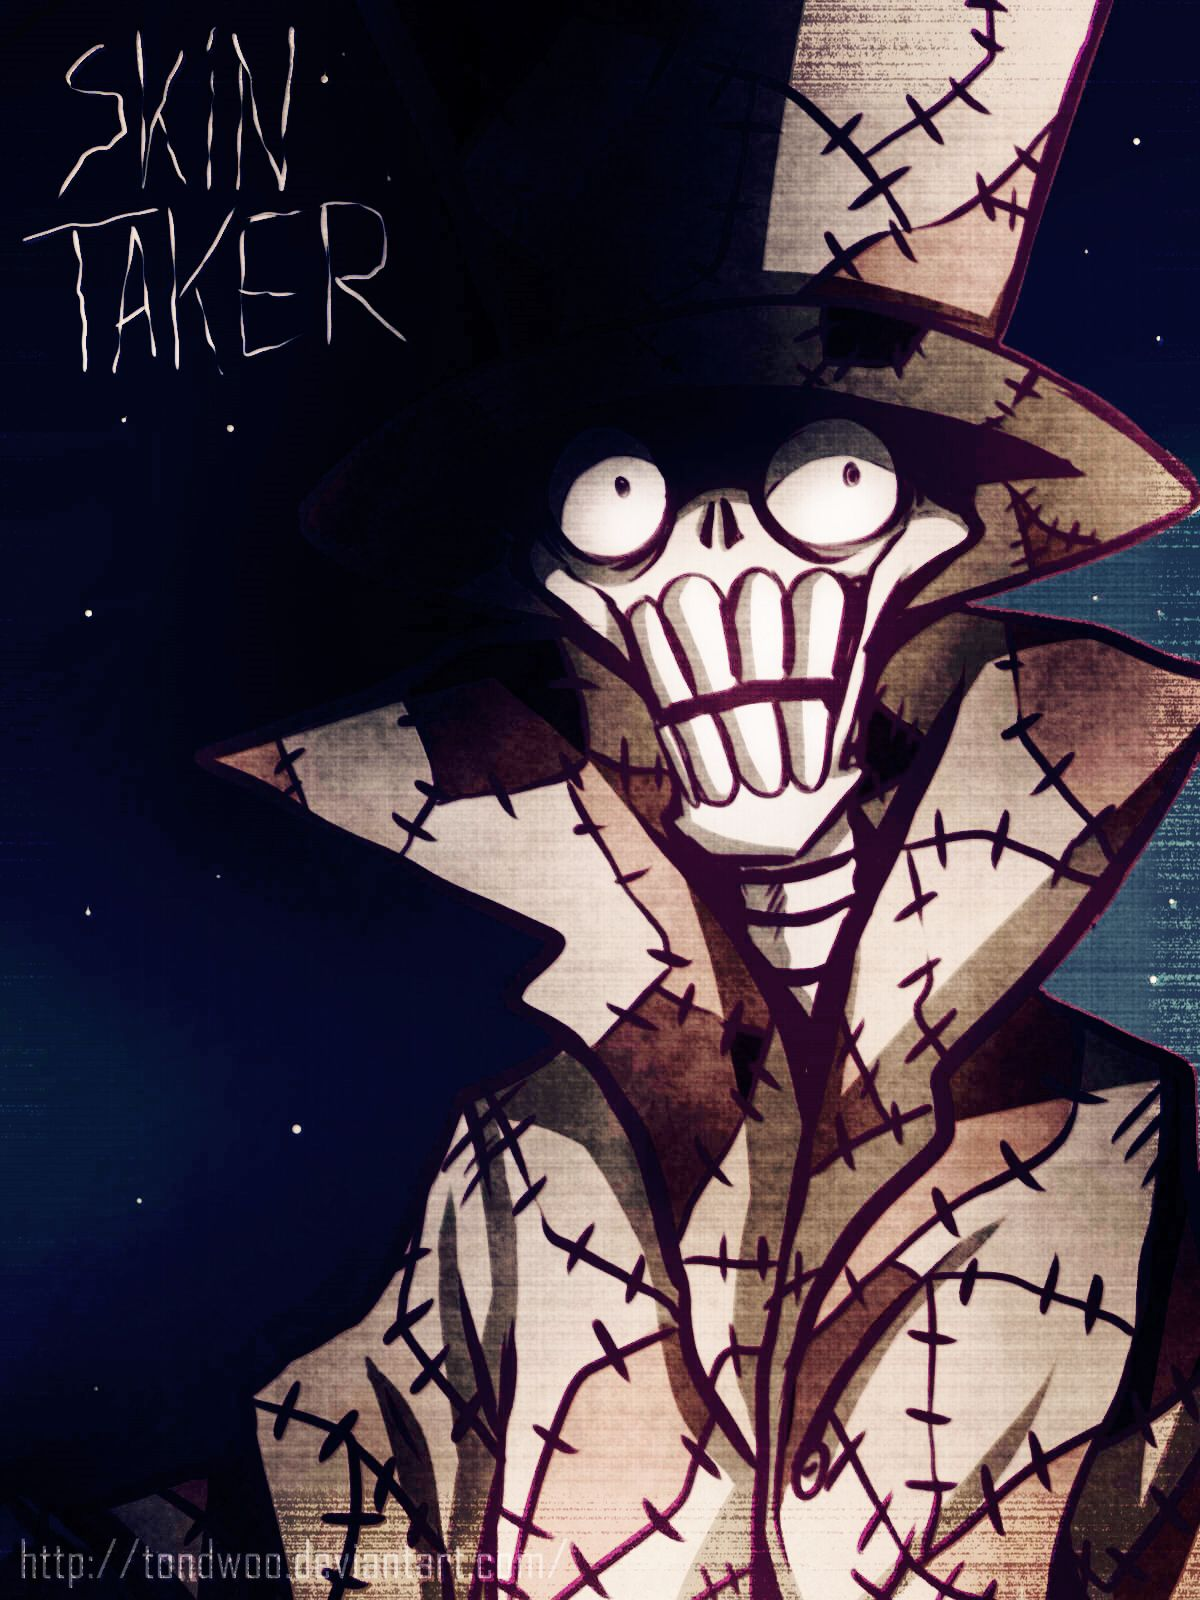 The Skin Taker From The Creepypasta Candle Cove Creepy